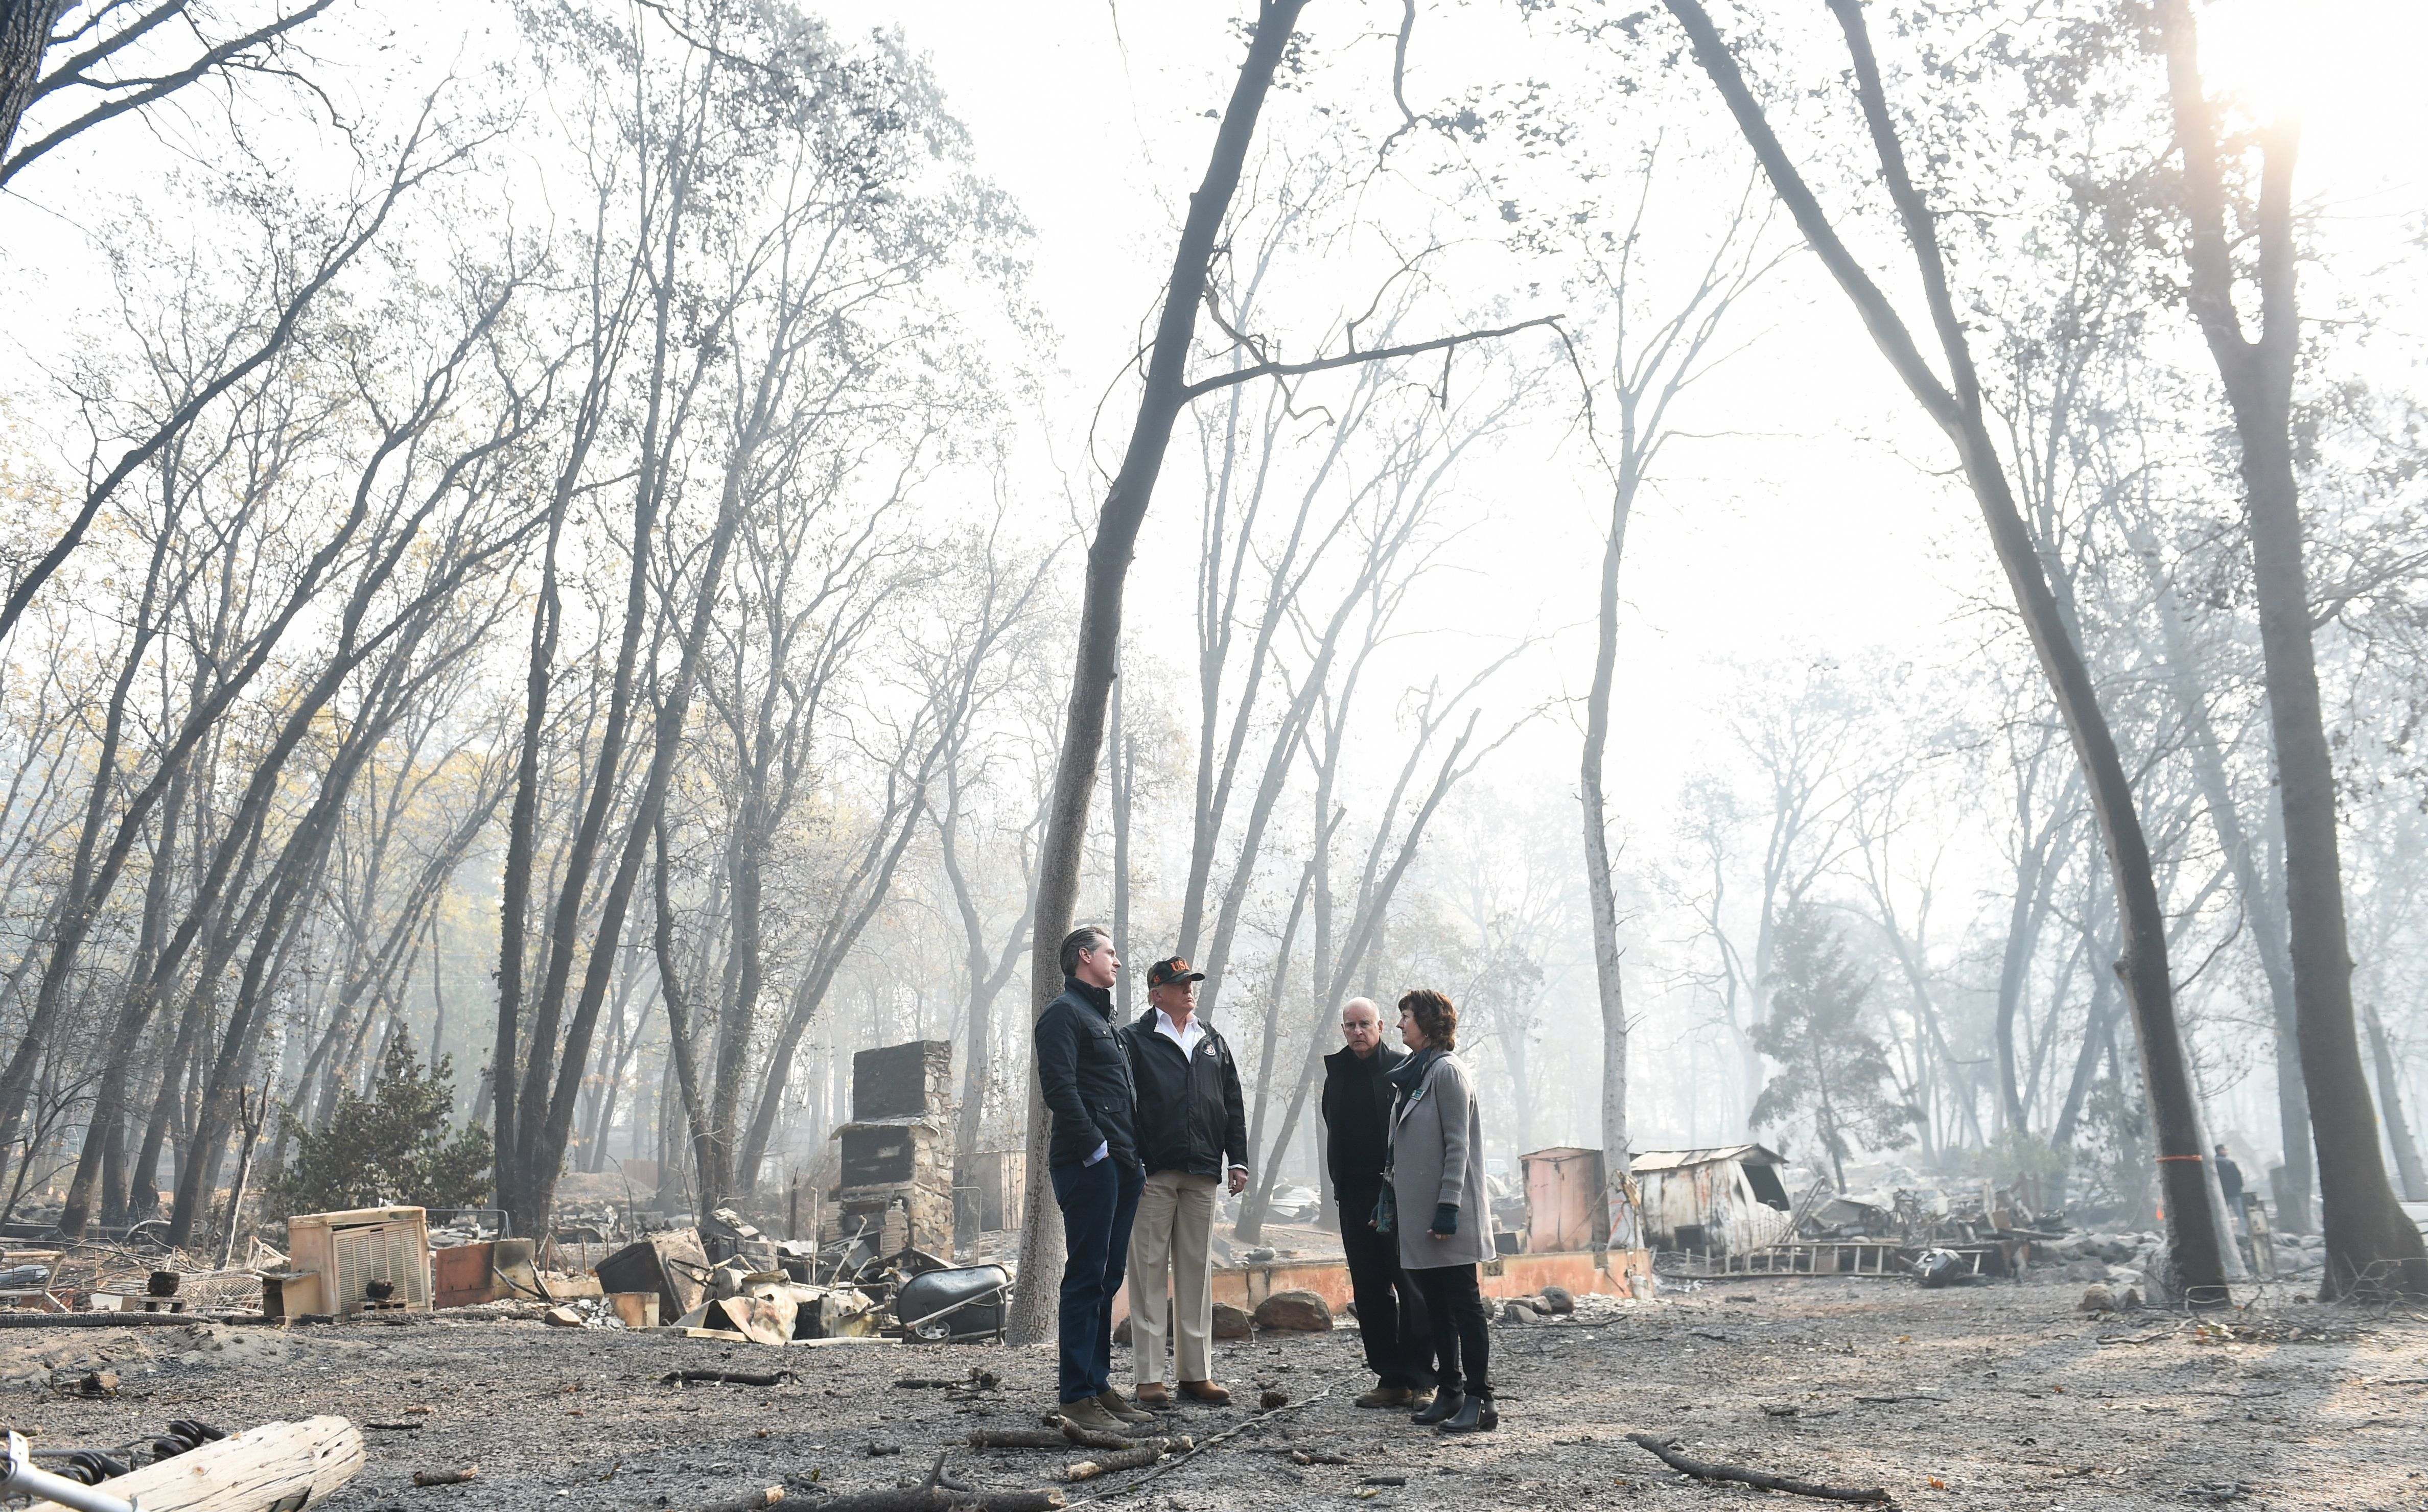 California wildfires with trump